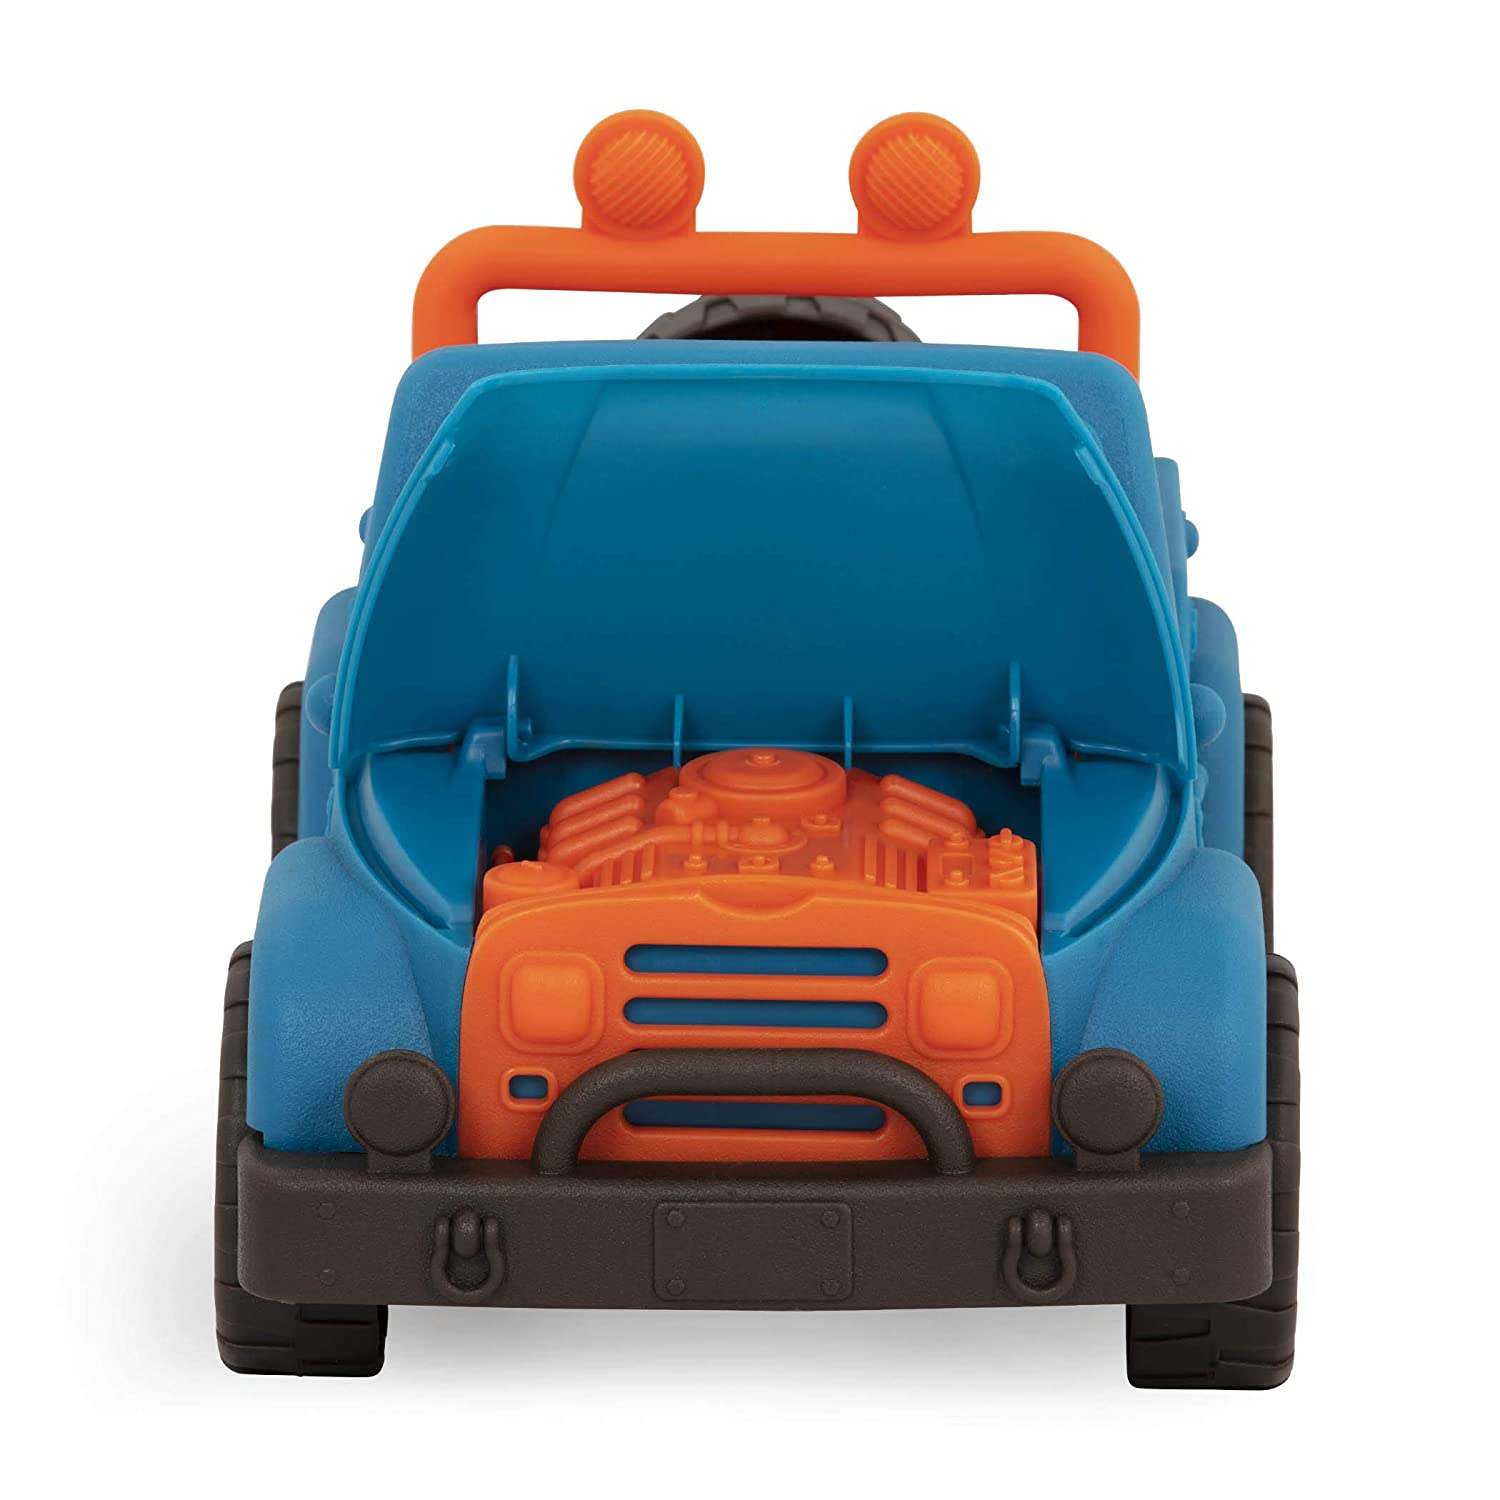 Wonder Wheels by Battat 100/% Recyclable 4 X 4 Blue Off-Road Toy Truck with Spare Tire /& Detailed Engine for Toddlers Age 1 /& Up